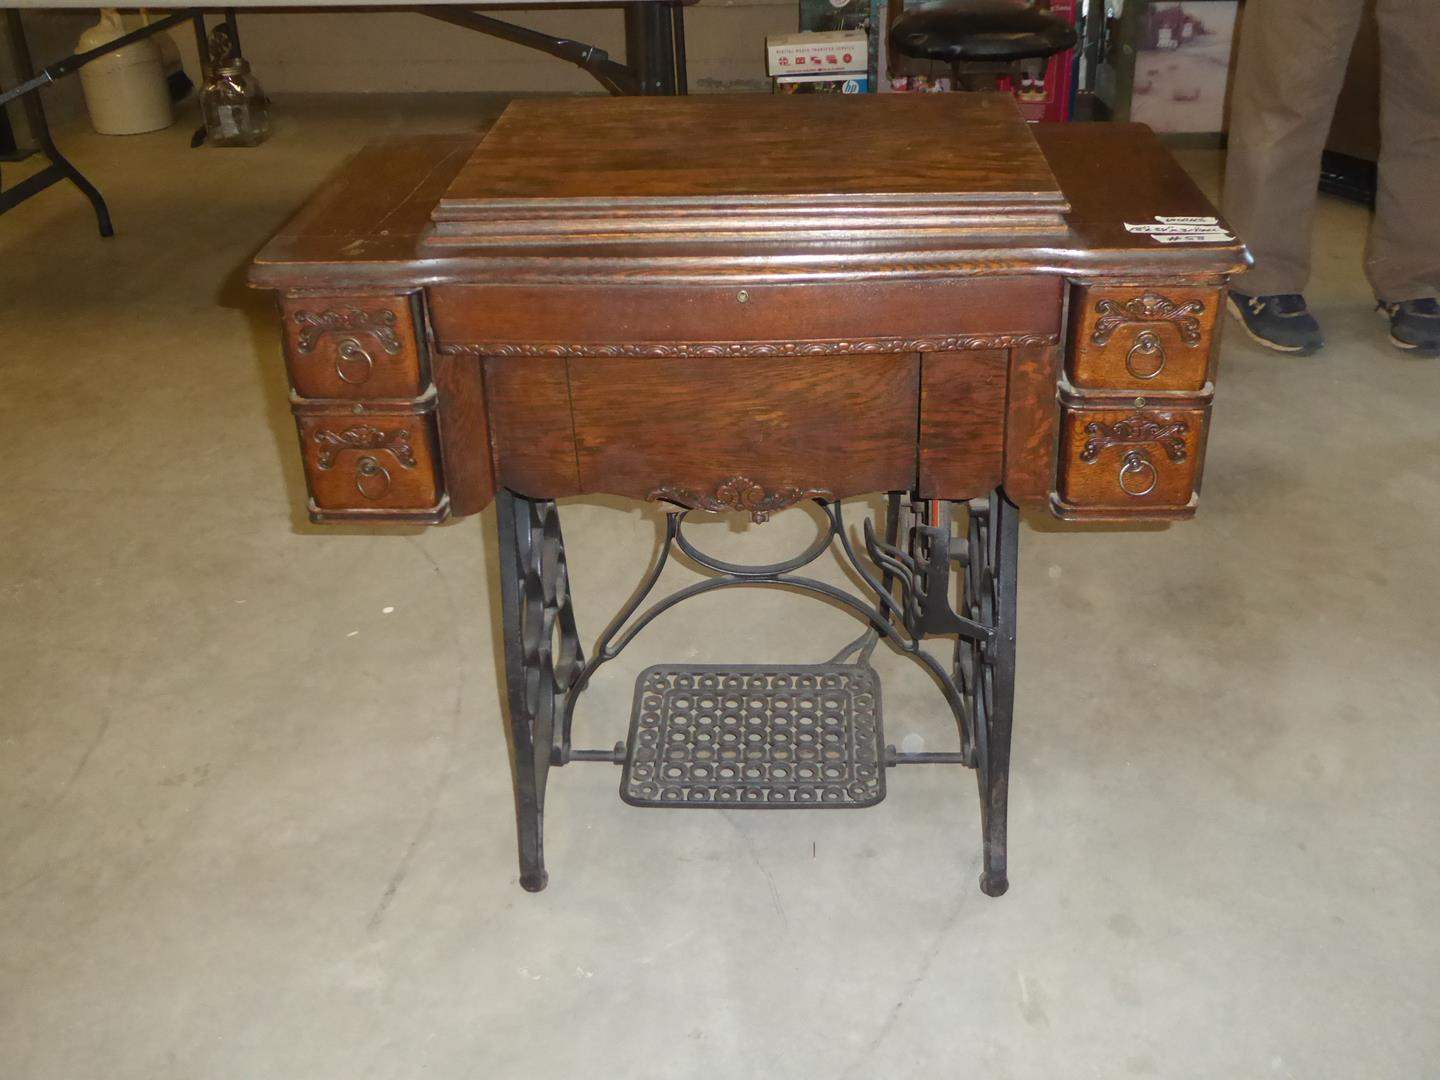 Lot # 58 - Antique Treadle Sewing Machine & Sewing Notions (main image)